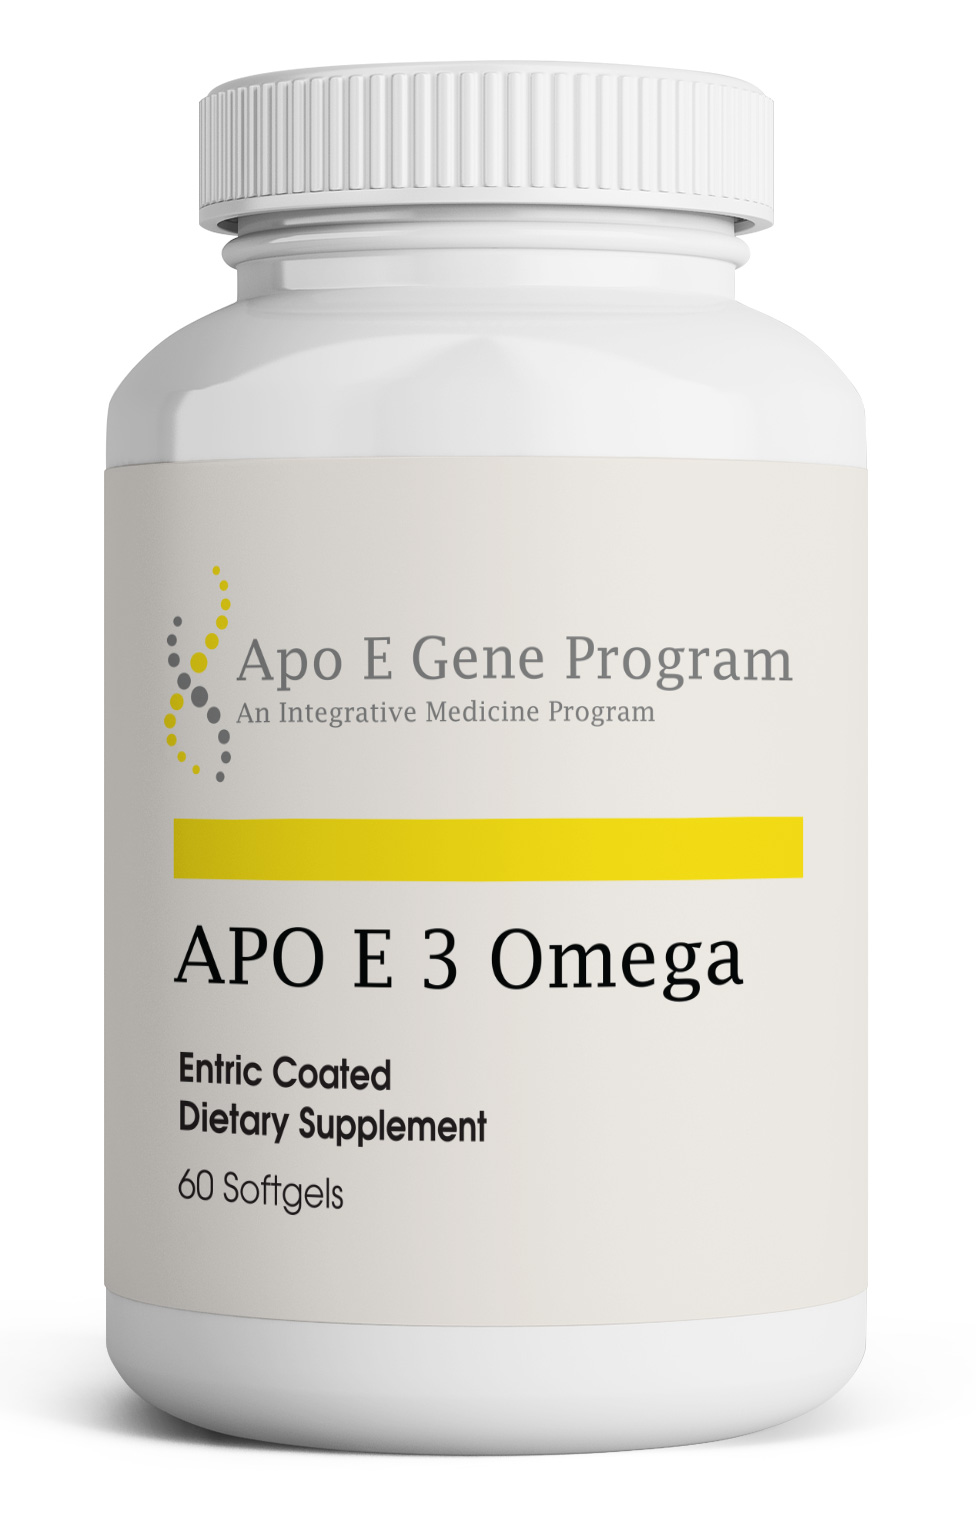 APO E Online Program Product